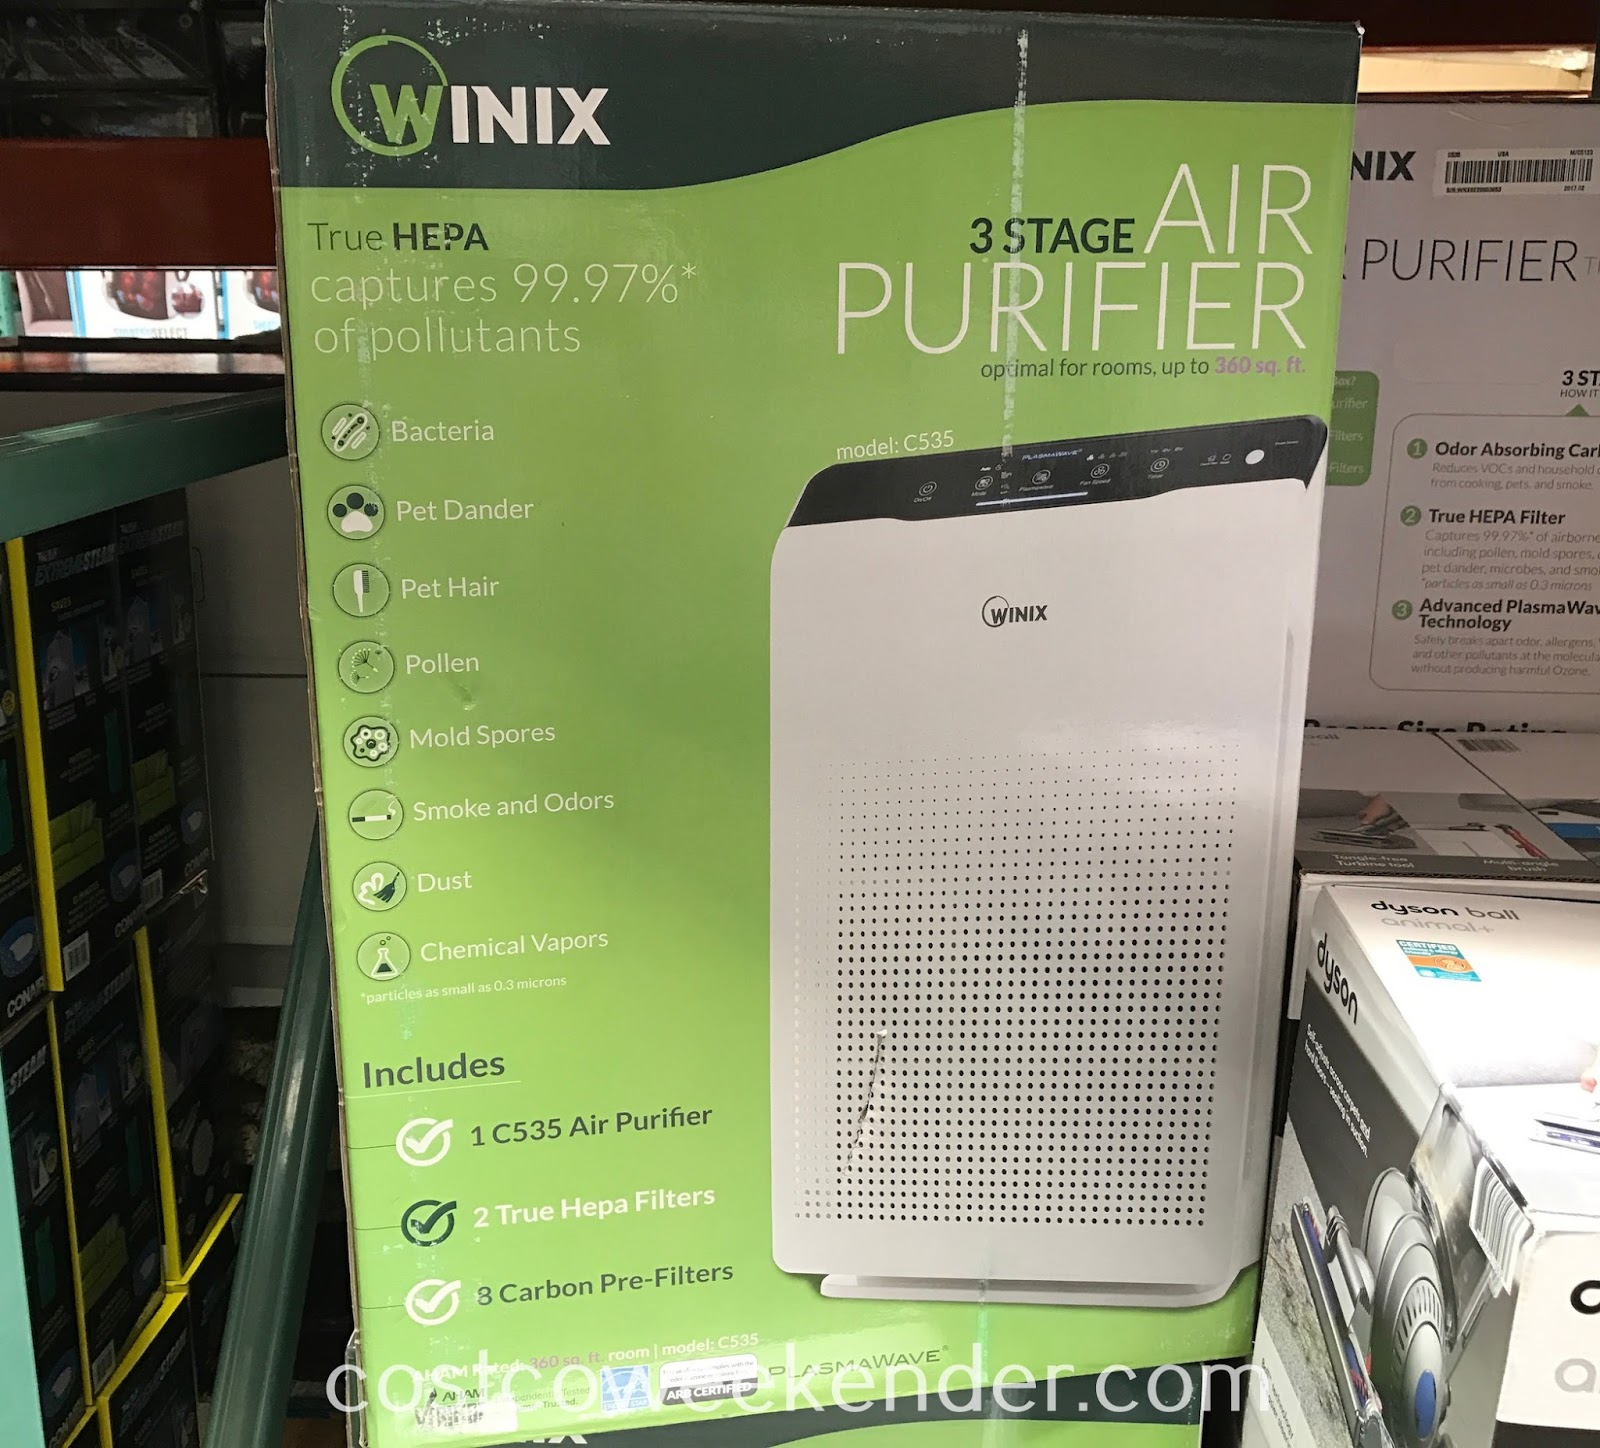 Breathe easier with the Winix Air Purifier (model C535)